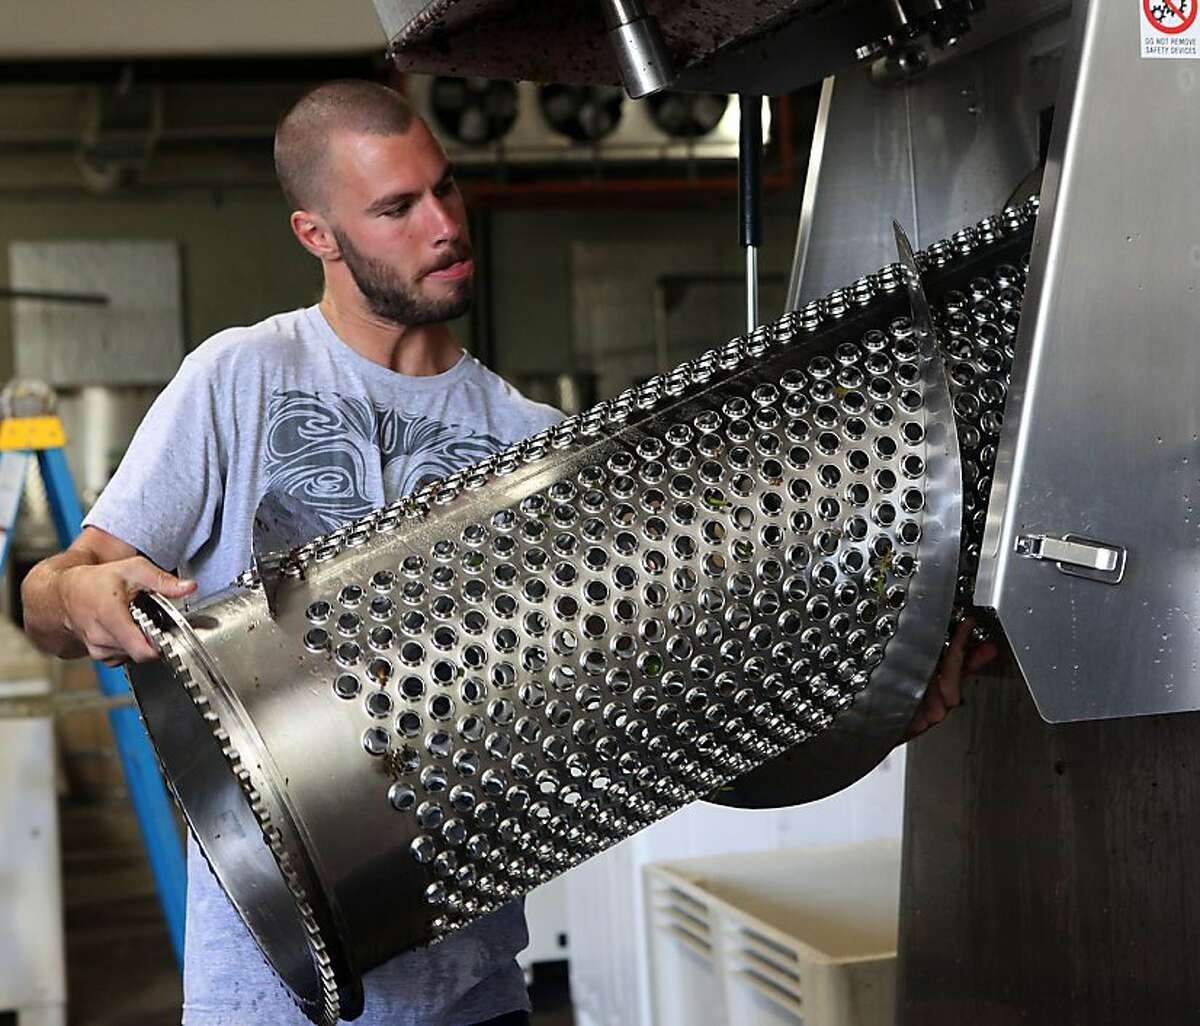 Intern Nathan Scott placing the destemmer basket back after cleaning it at August West winery in San Francisco, Calif., on Wednesday, September 21, 2011.